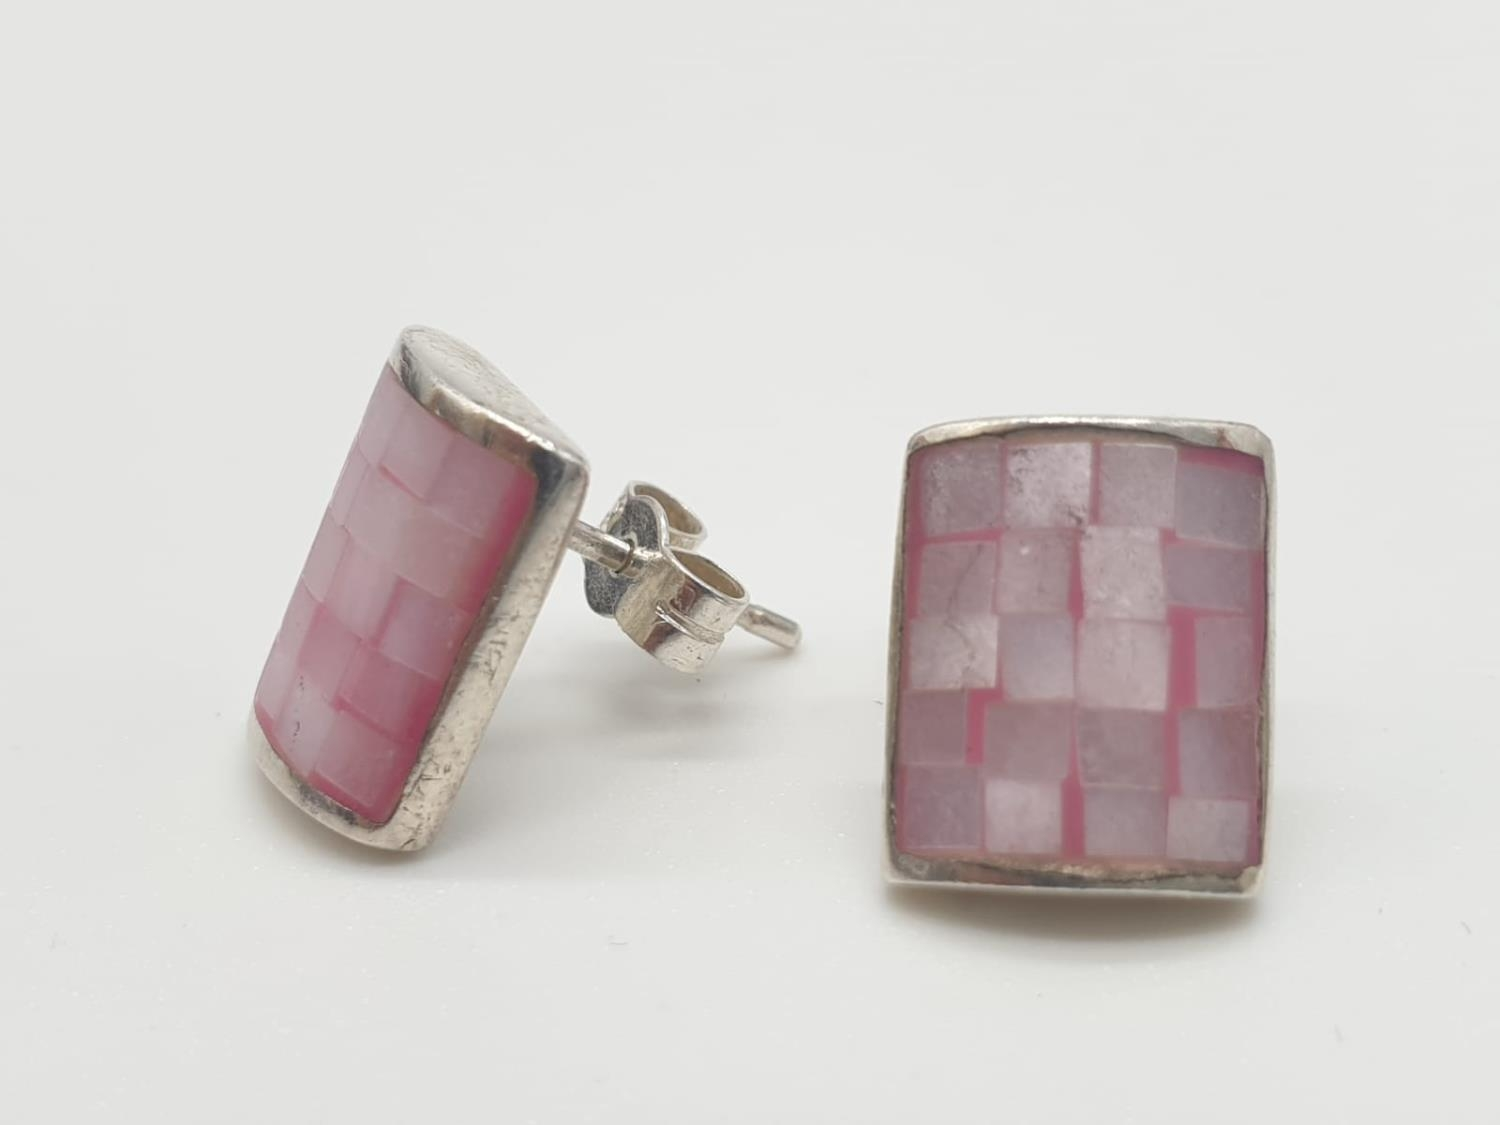 Silver stone set EARRINGS in rectangular form having pale pink mother of pearl brickwork pattern. - Image 2 of 3